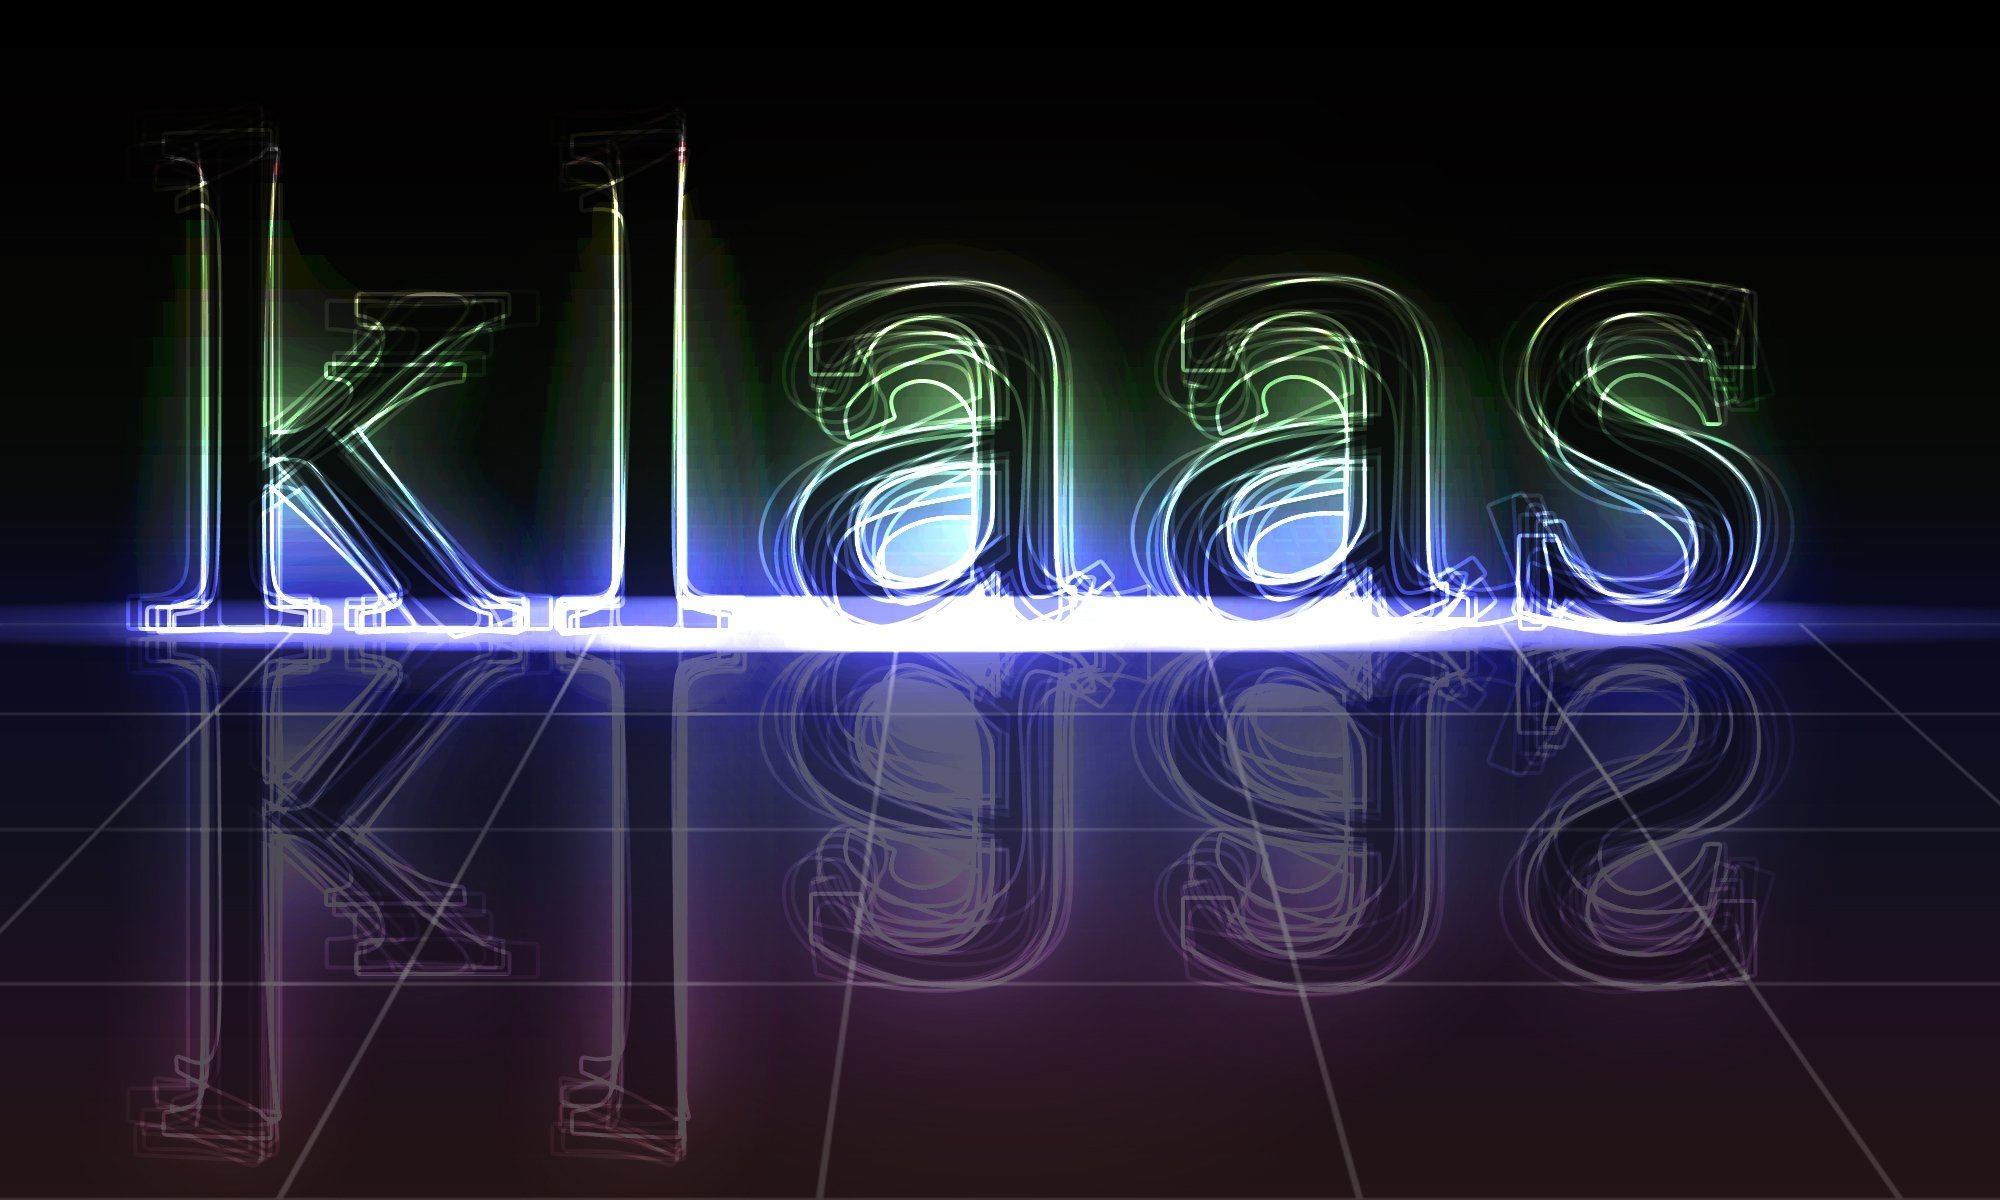 my name wallpaper by sidstyler customization wallpaper still life 2008 2000x1200